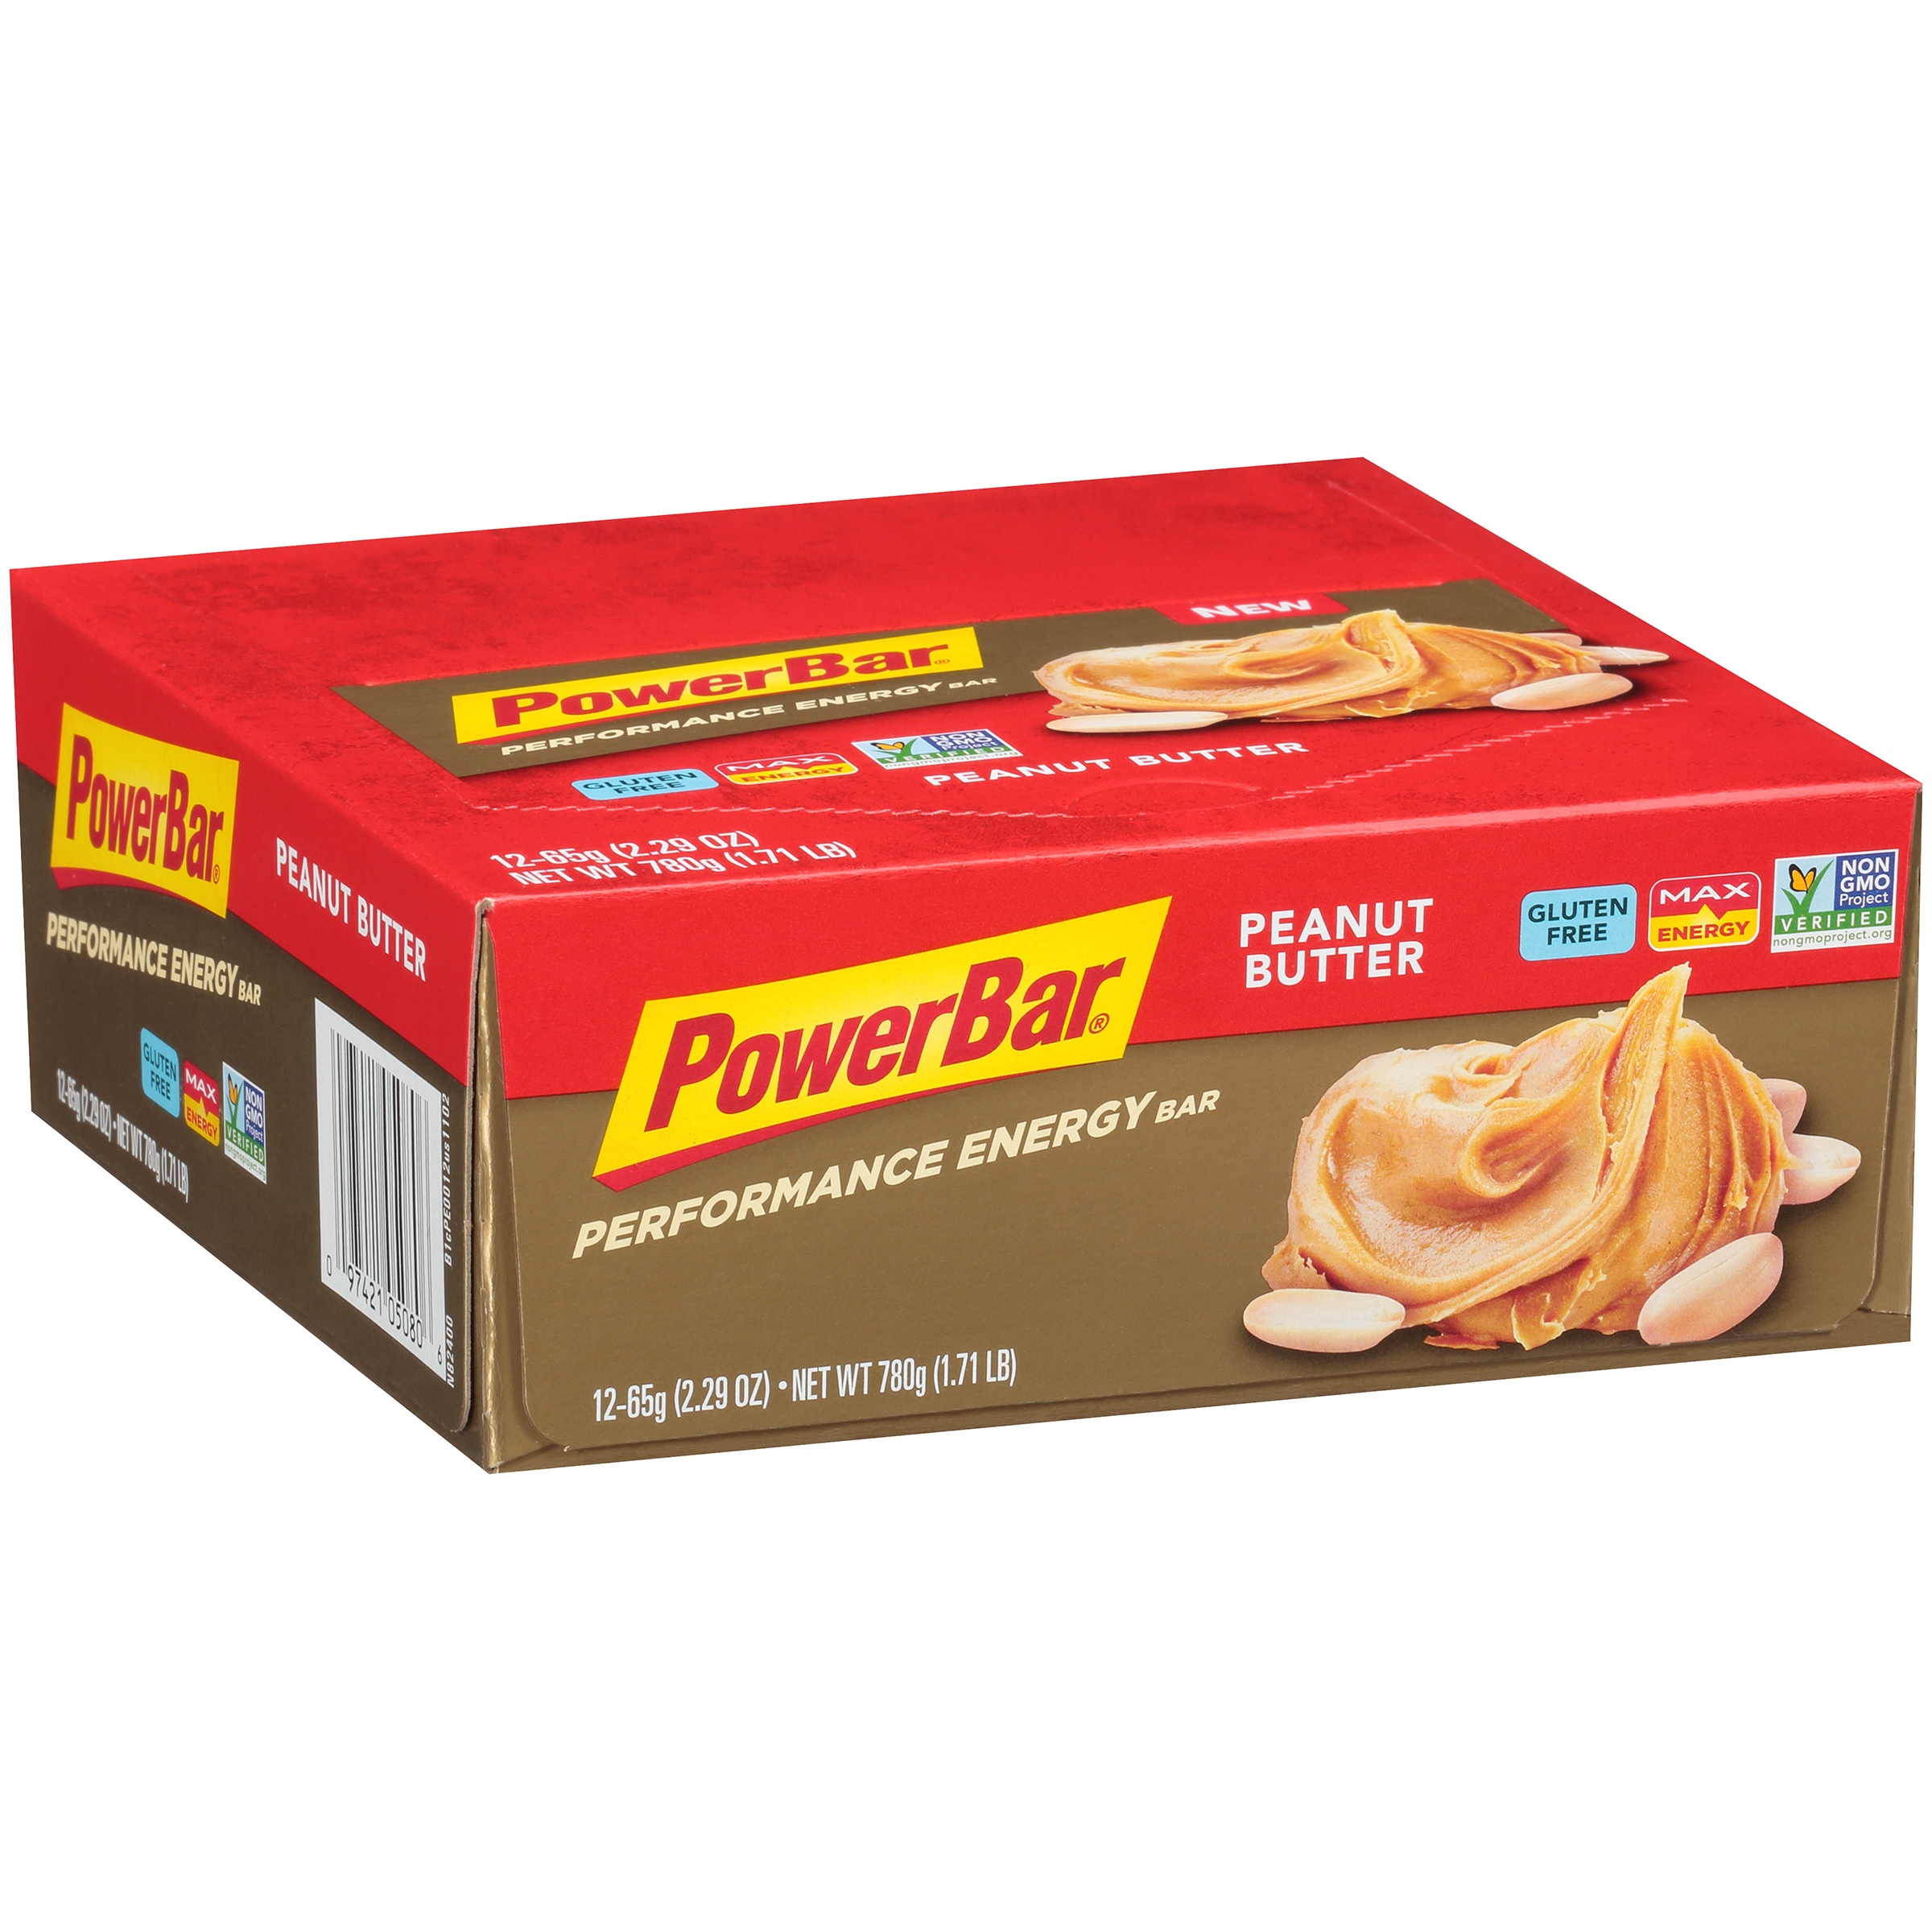 Powerbar Performance Energy Bar, 10 Grams of Protein, Peanut Butter, 2.29 Oz, 12 Ct